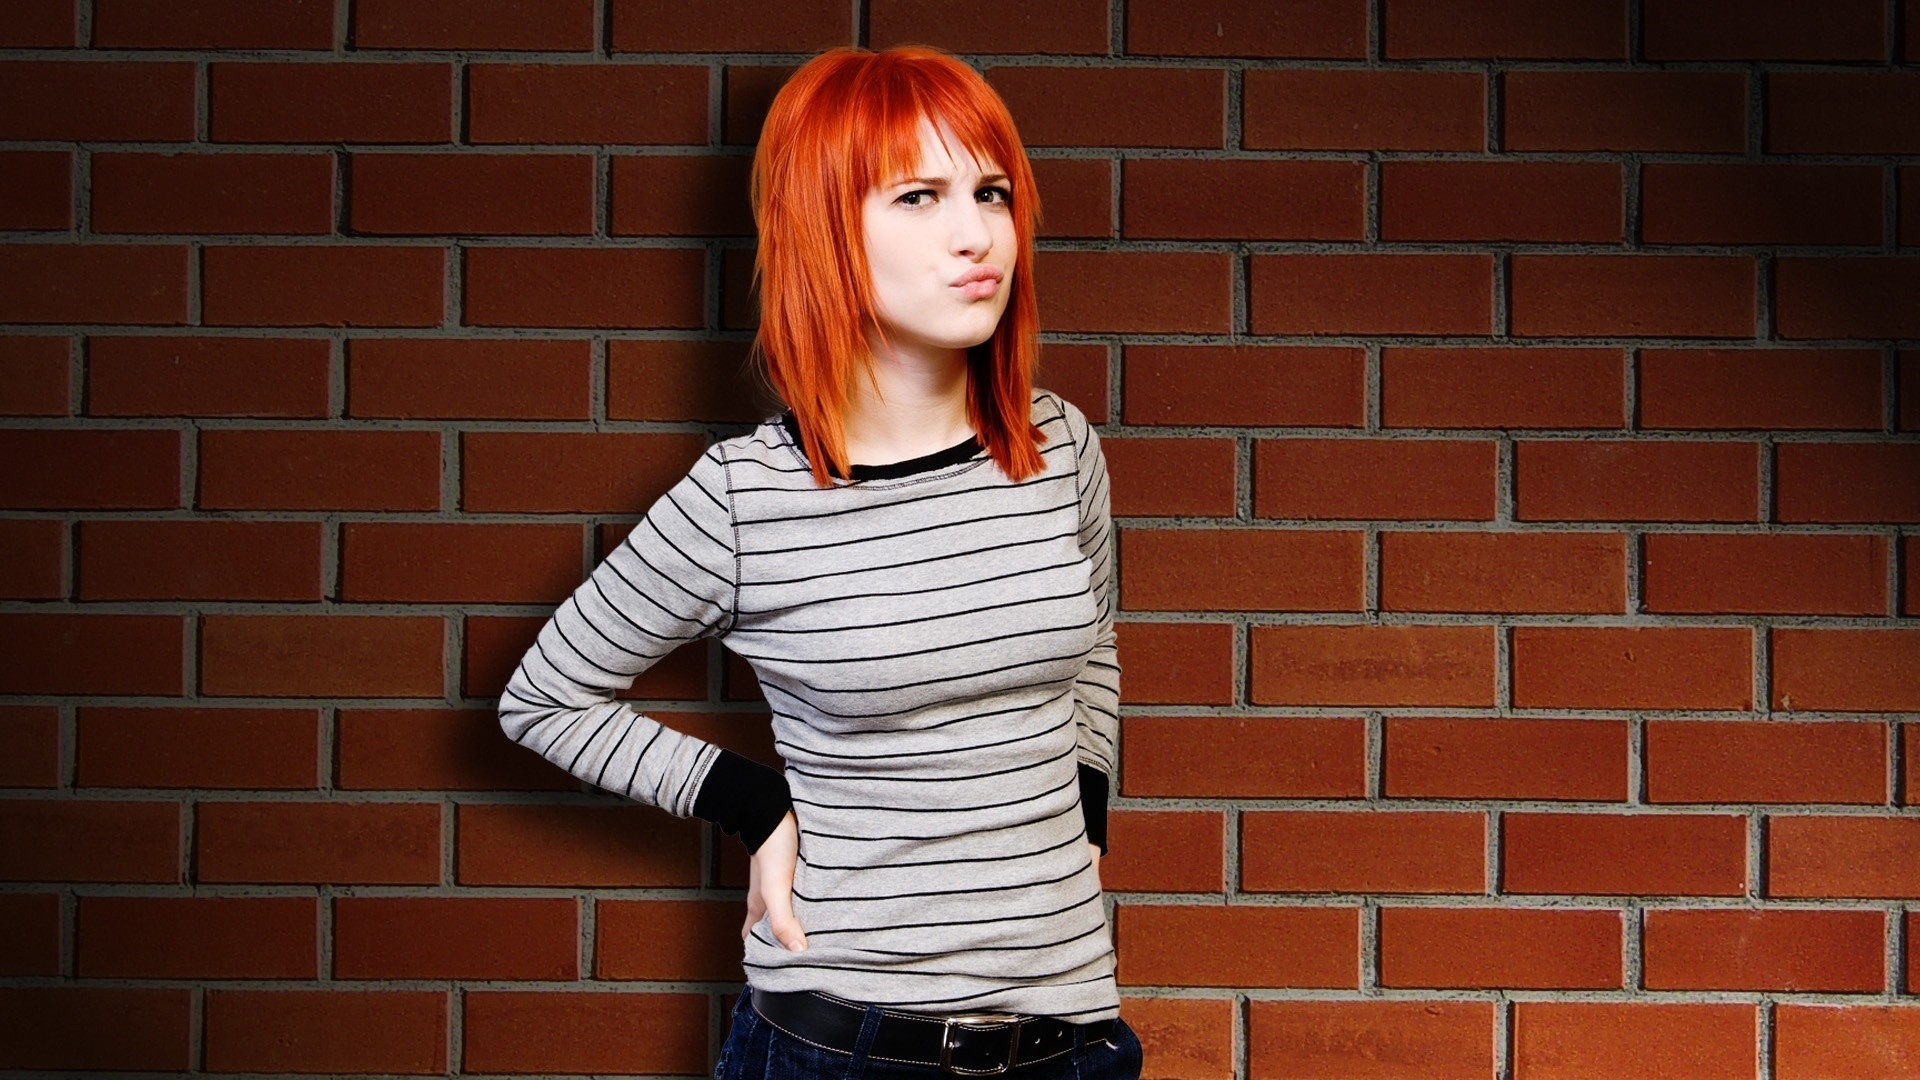 hayley williams woman redheads